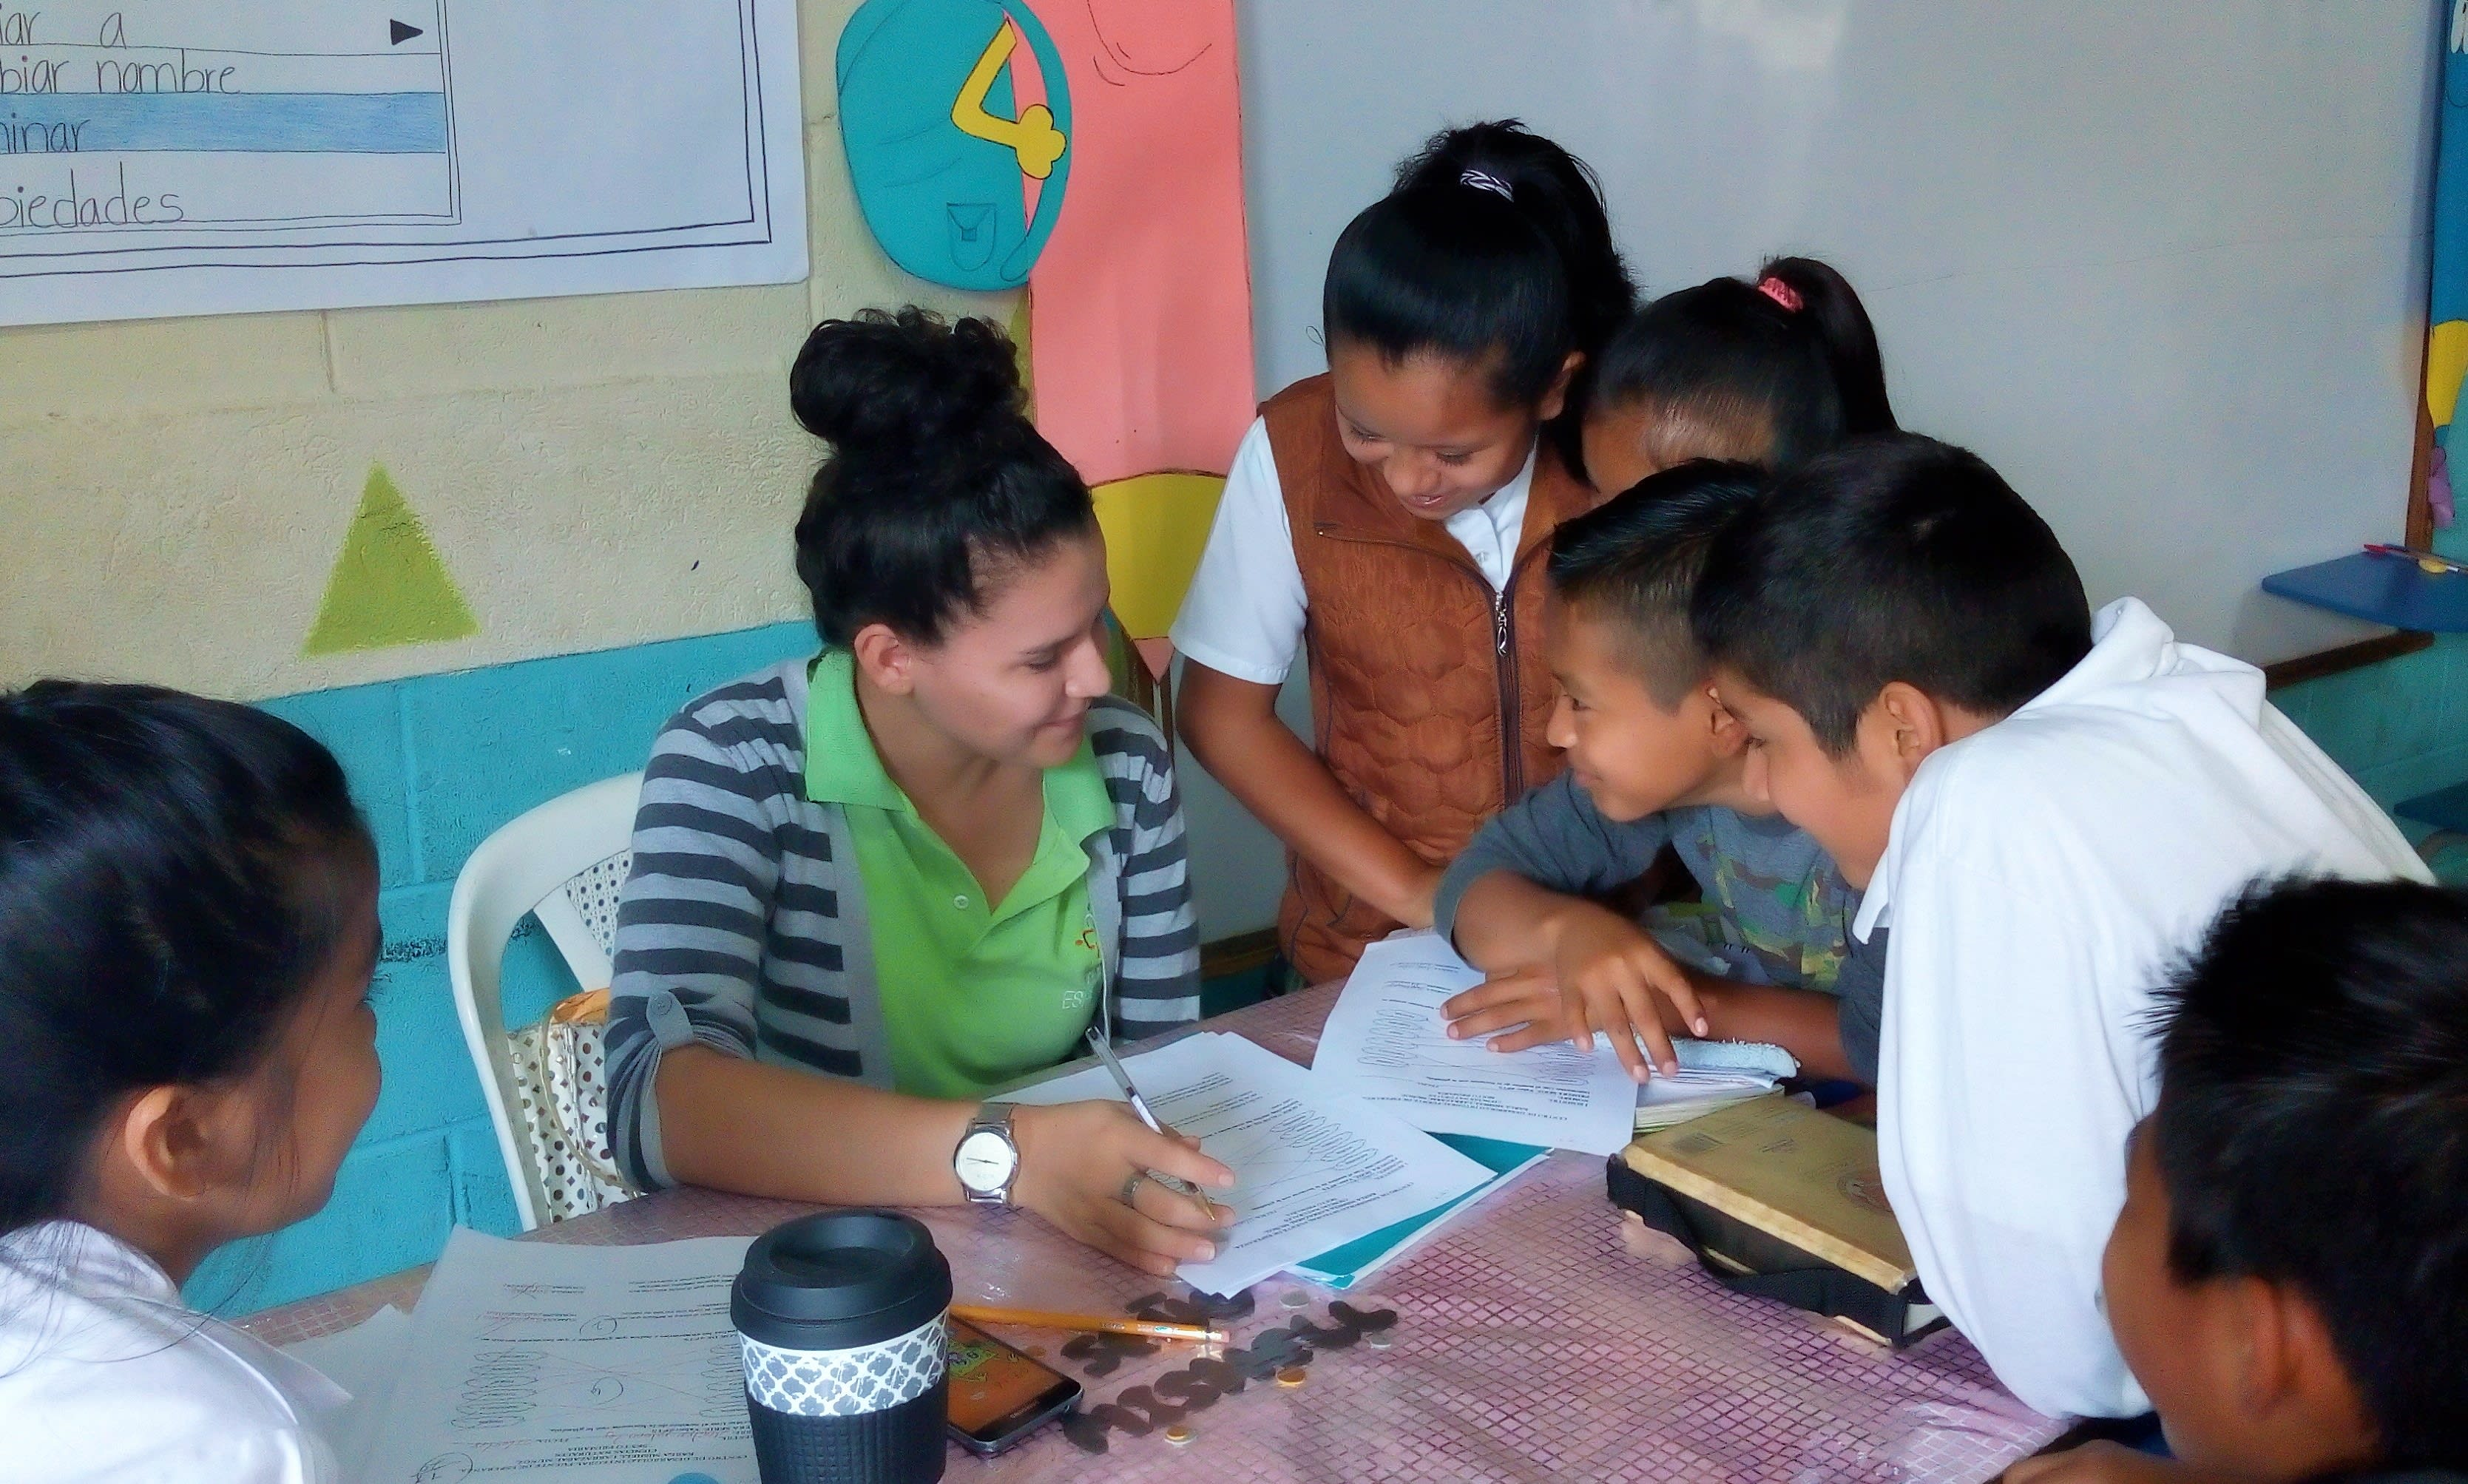 Source of Hope Kids gathering by teacher